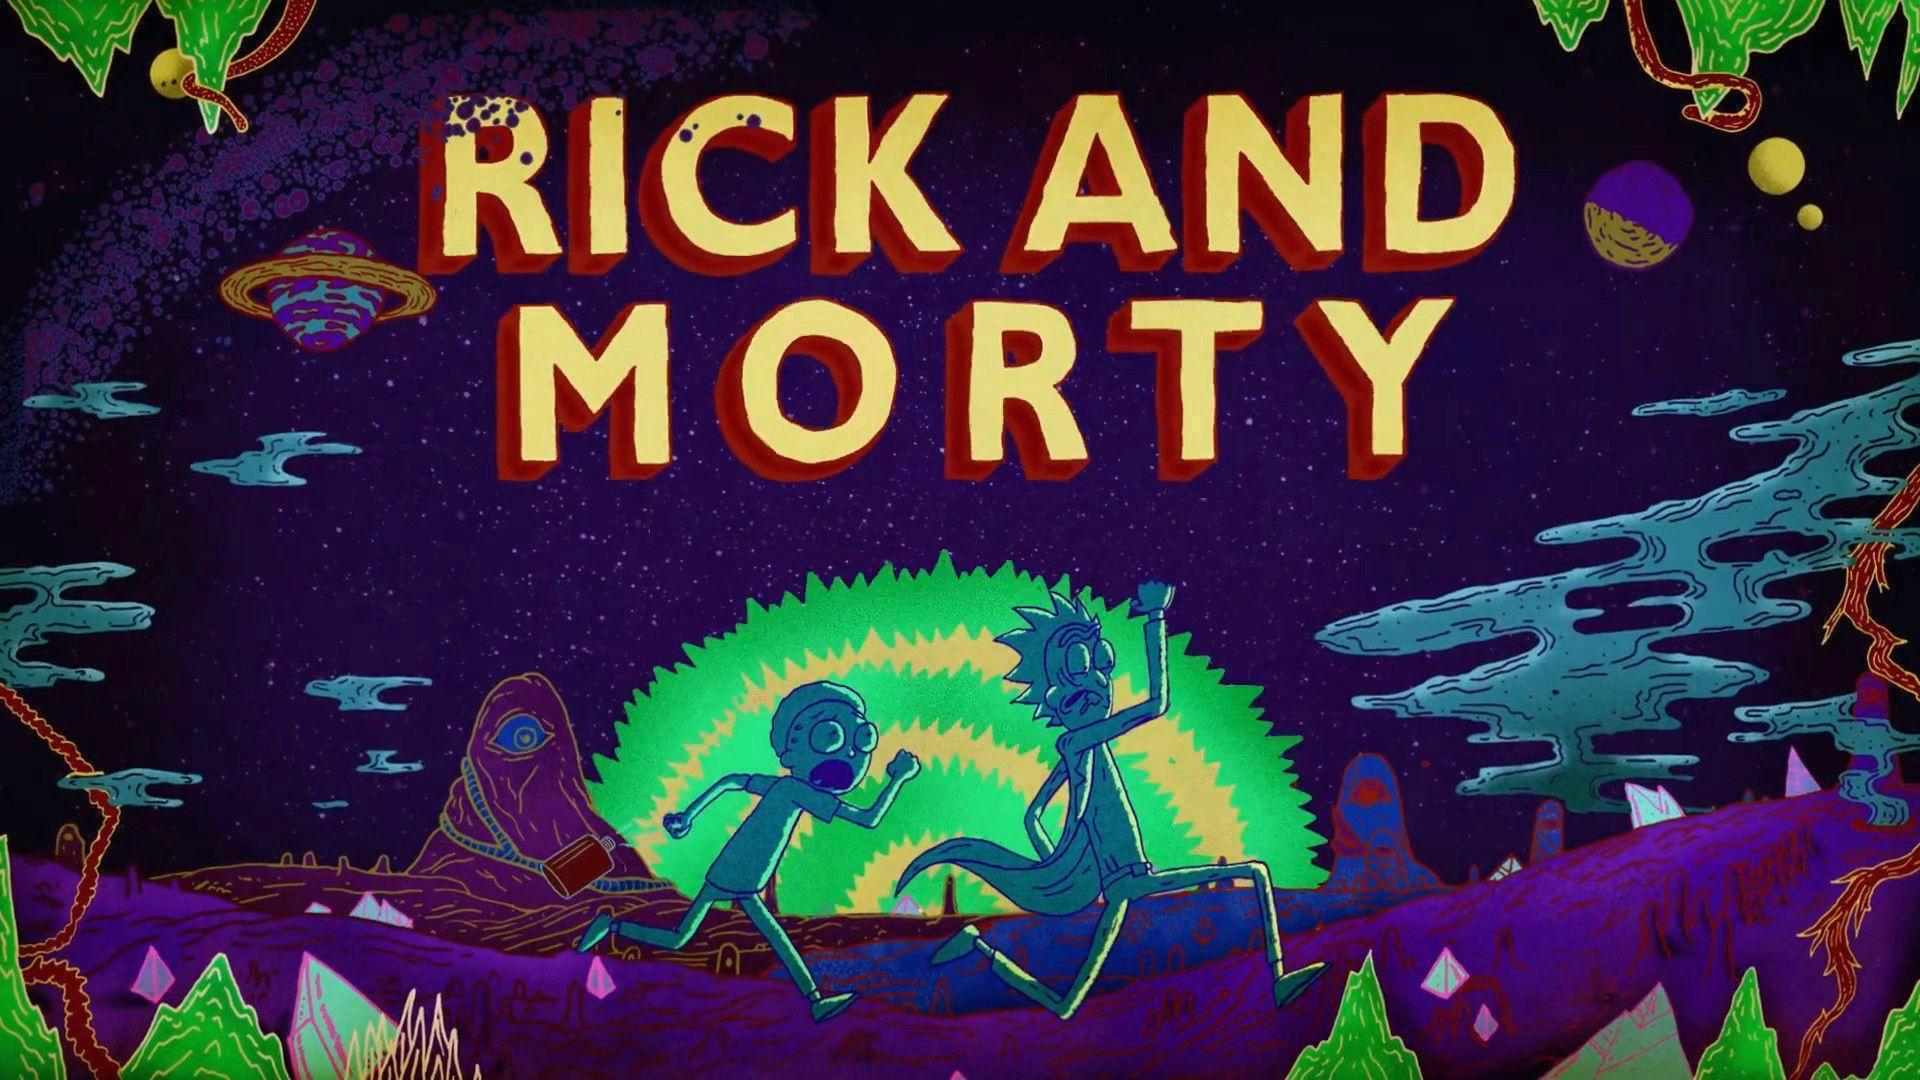 Cool Rick And Morty Wallpaper Posted By Zoey Walker